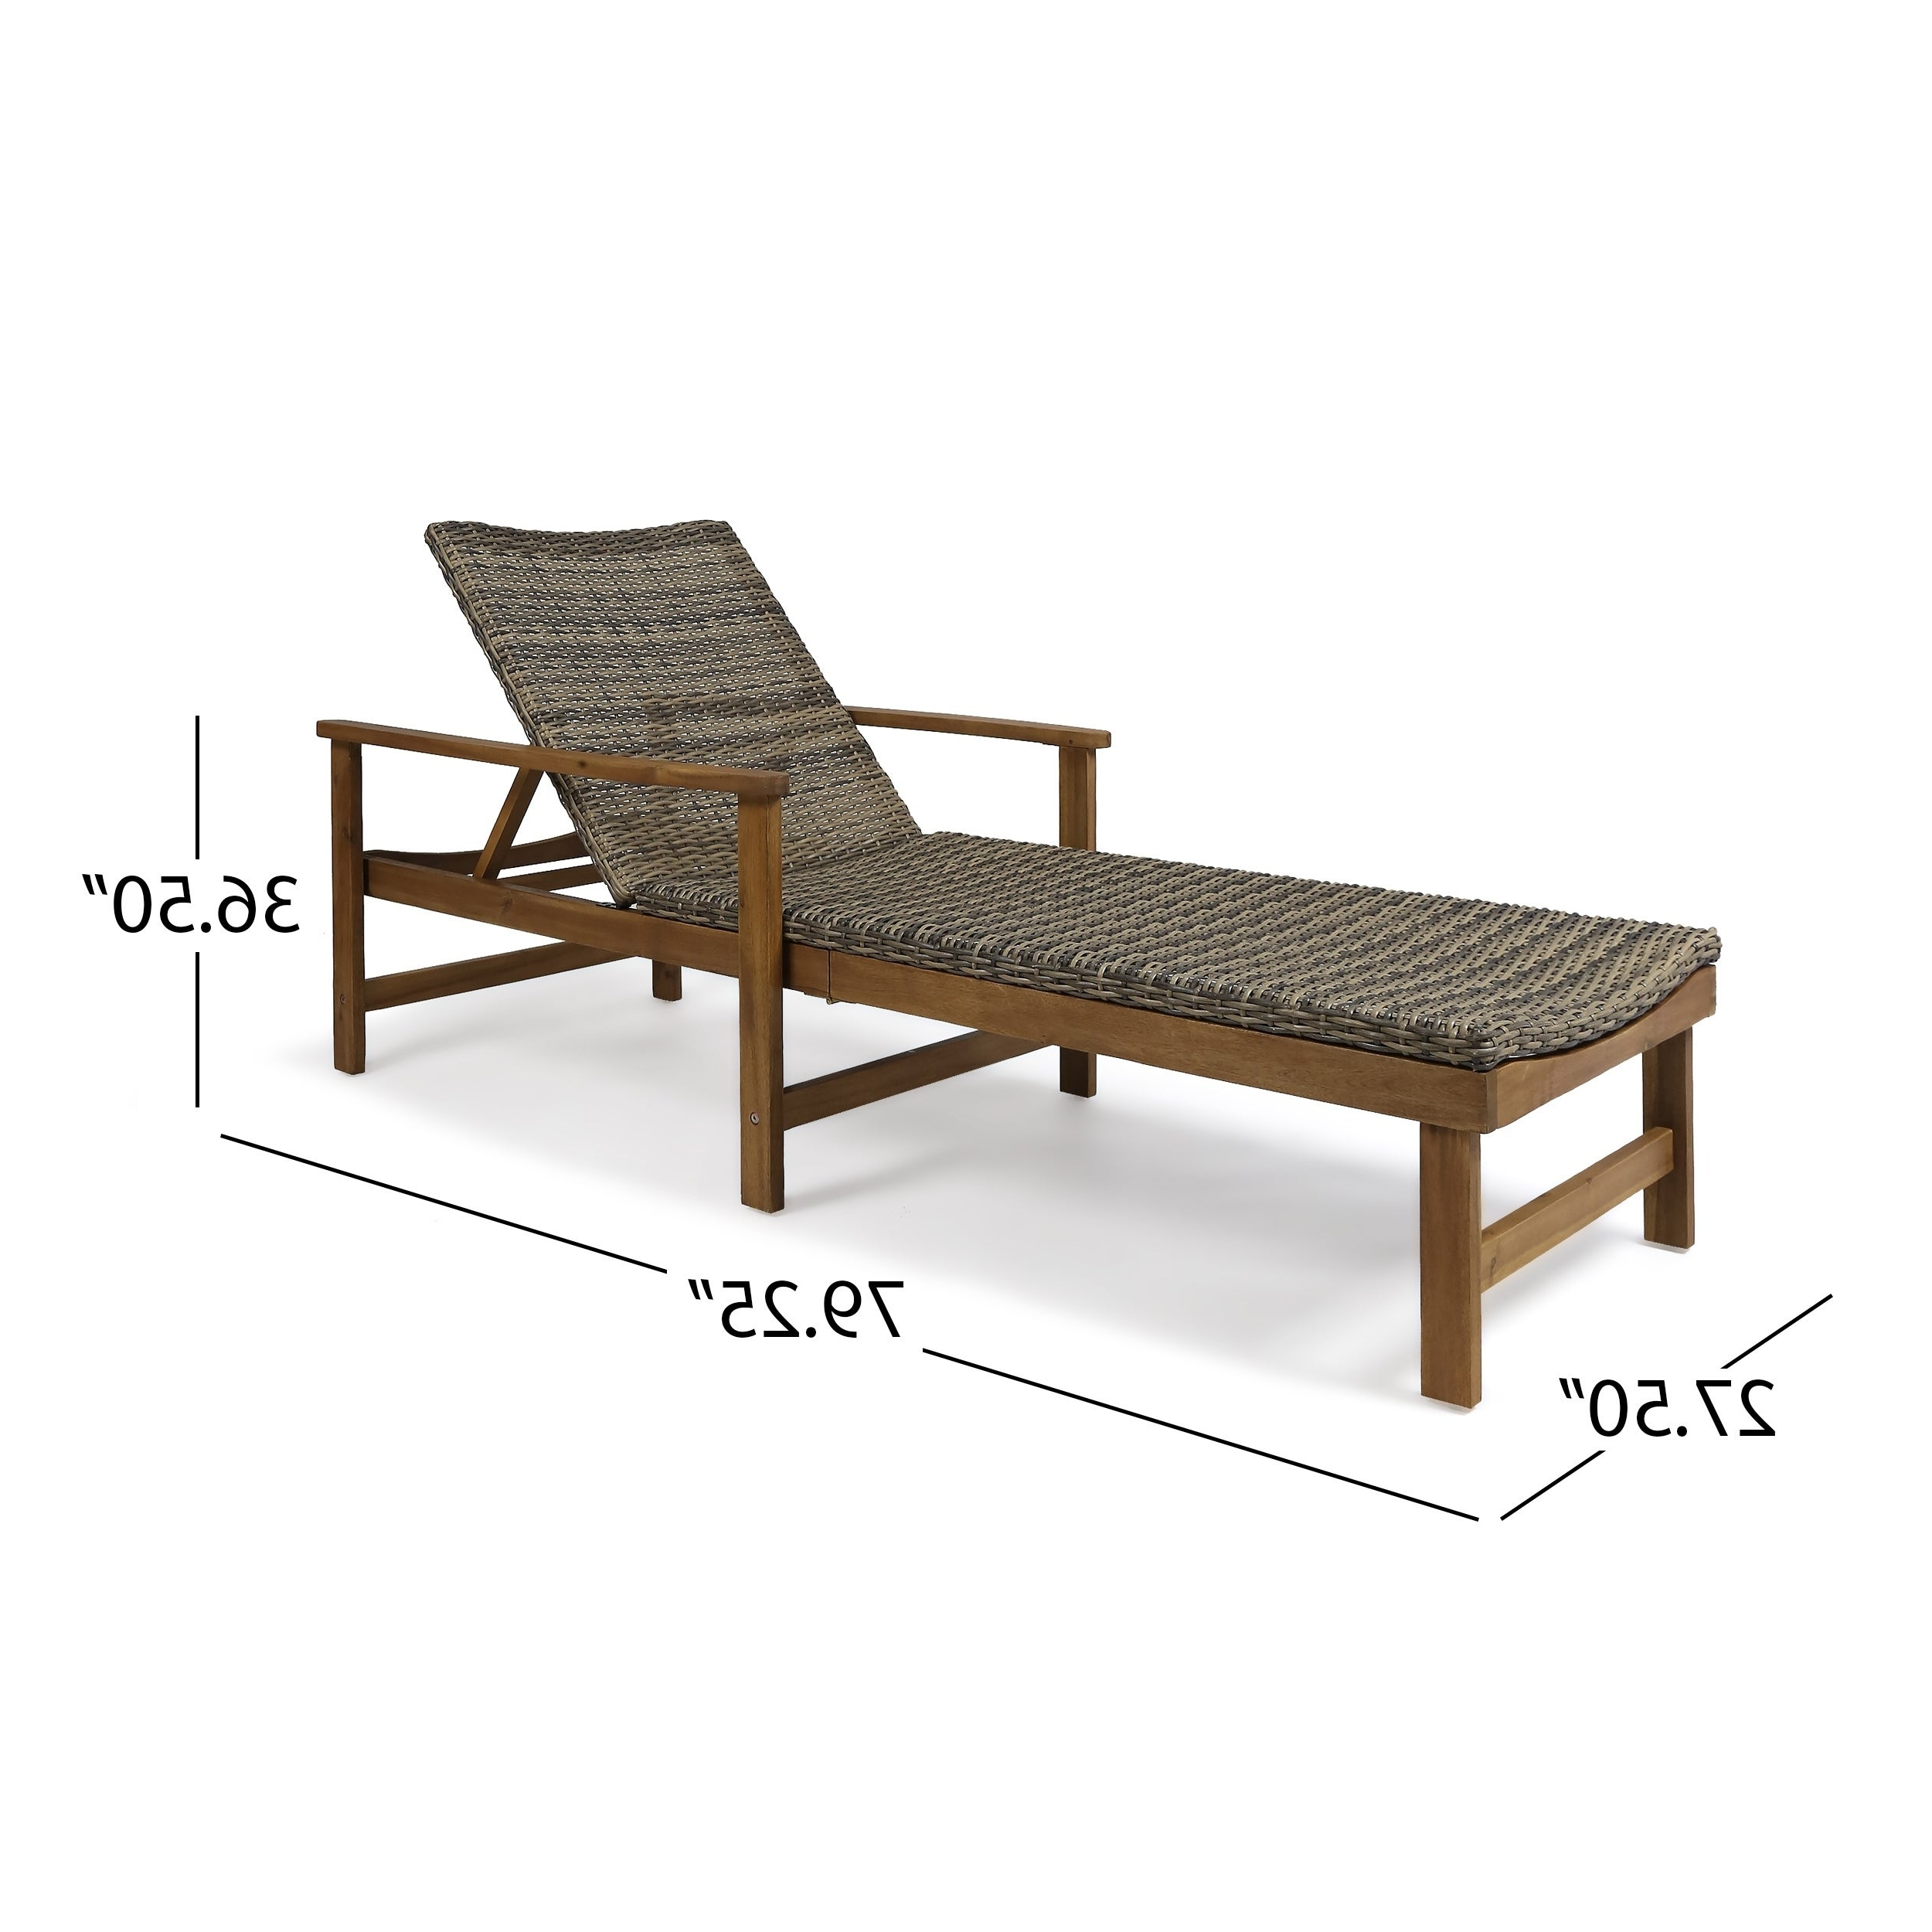 Outdoor Rustic Acacia Wood Chaise Lounges With Wicker Seats Pertaining To Current Details About Hampton Outdoor Rustic Acacia Wood Chaise Lounge With Wicker (View 15 of 25)